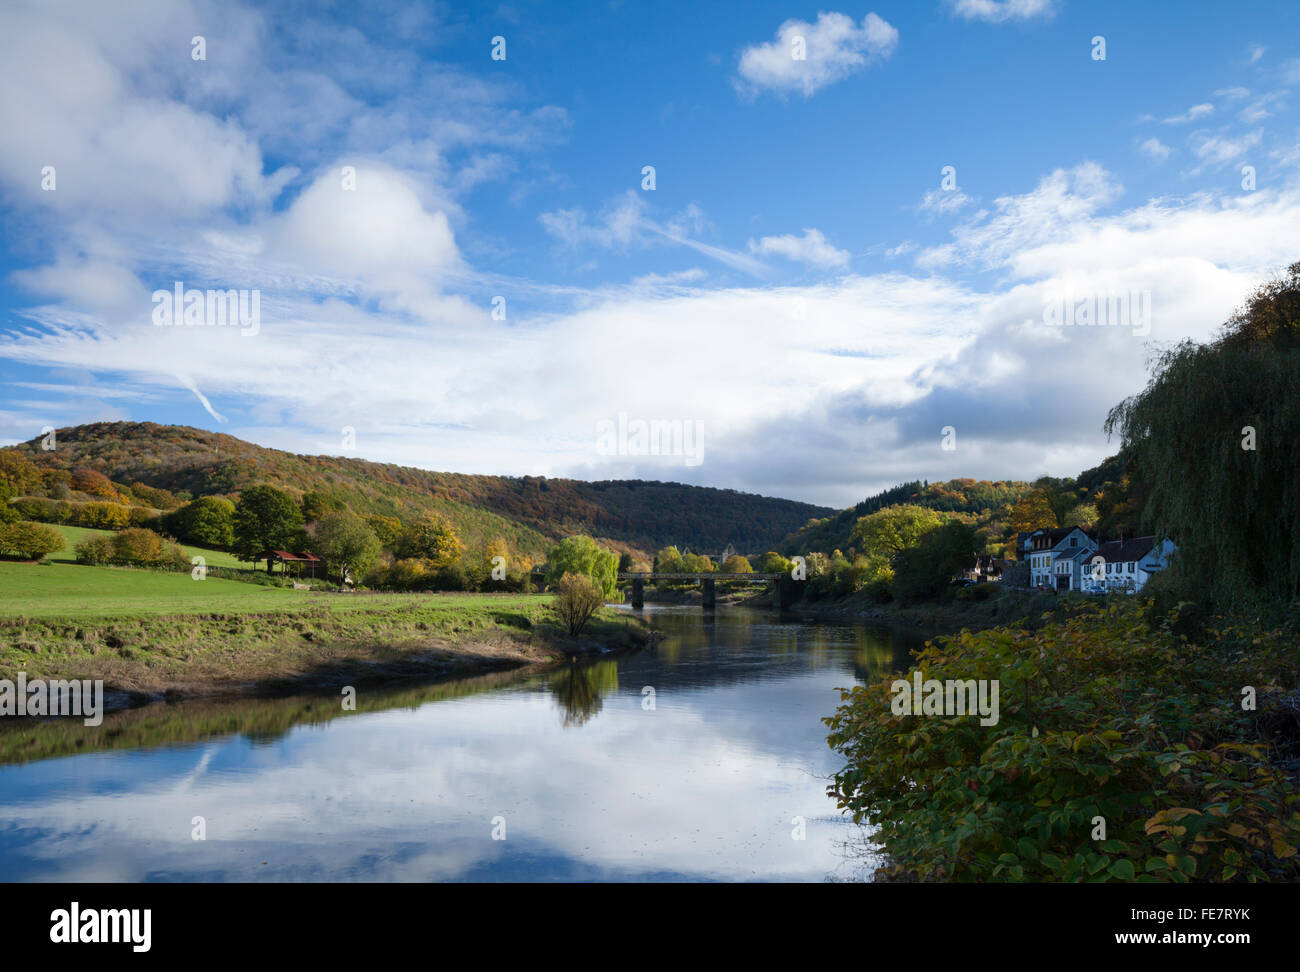 Beside the River Wye at Tintern looking towards the Devils Pulpit and the ruins of Tintern Abbey and old Wireworks - Stock Image